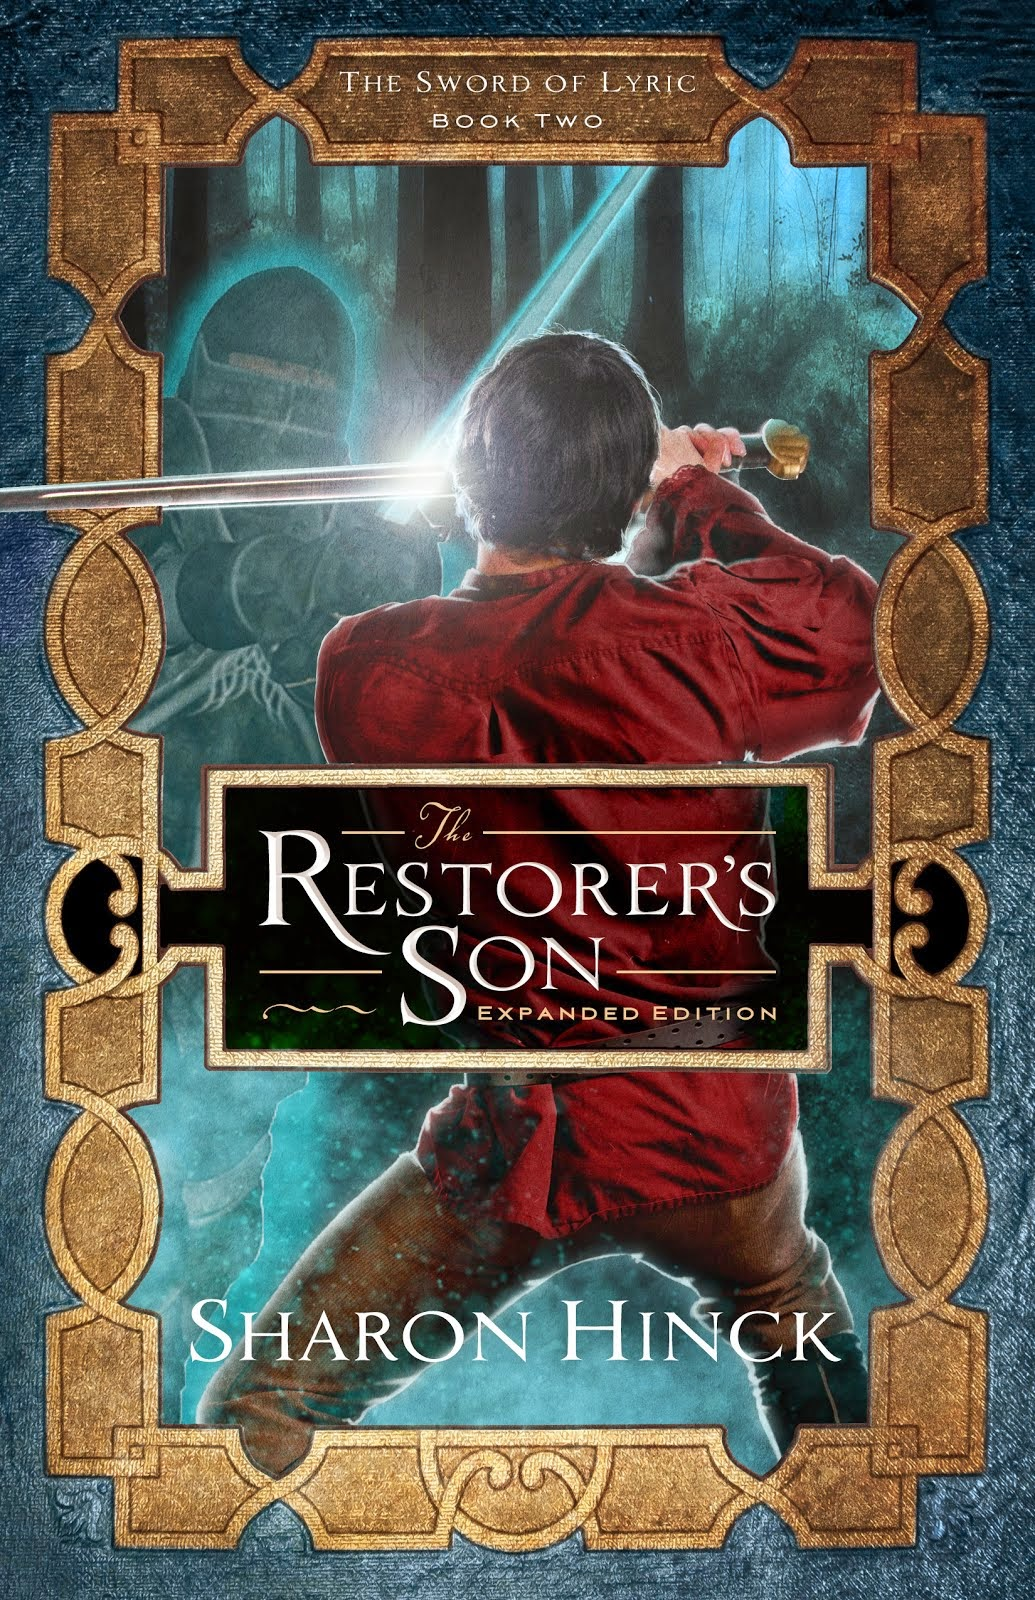 The Restorer's Son